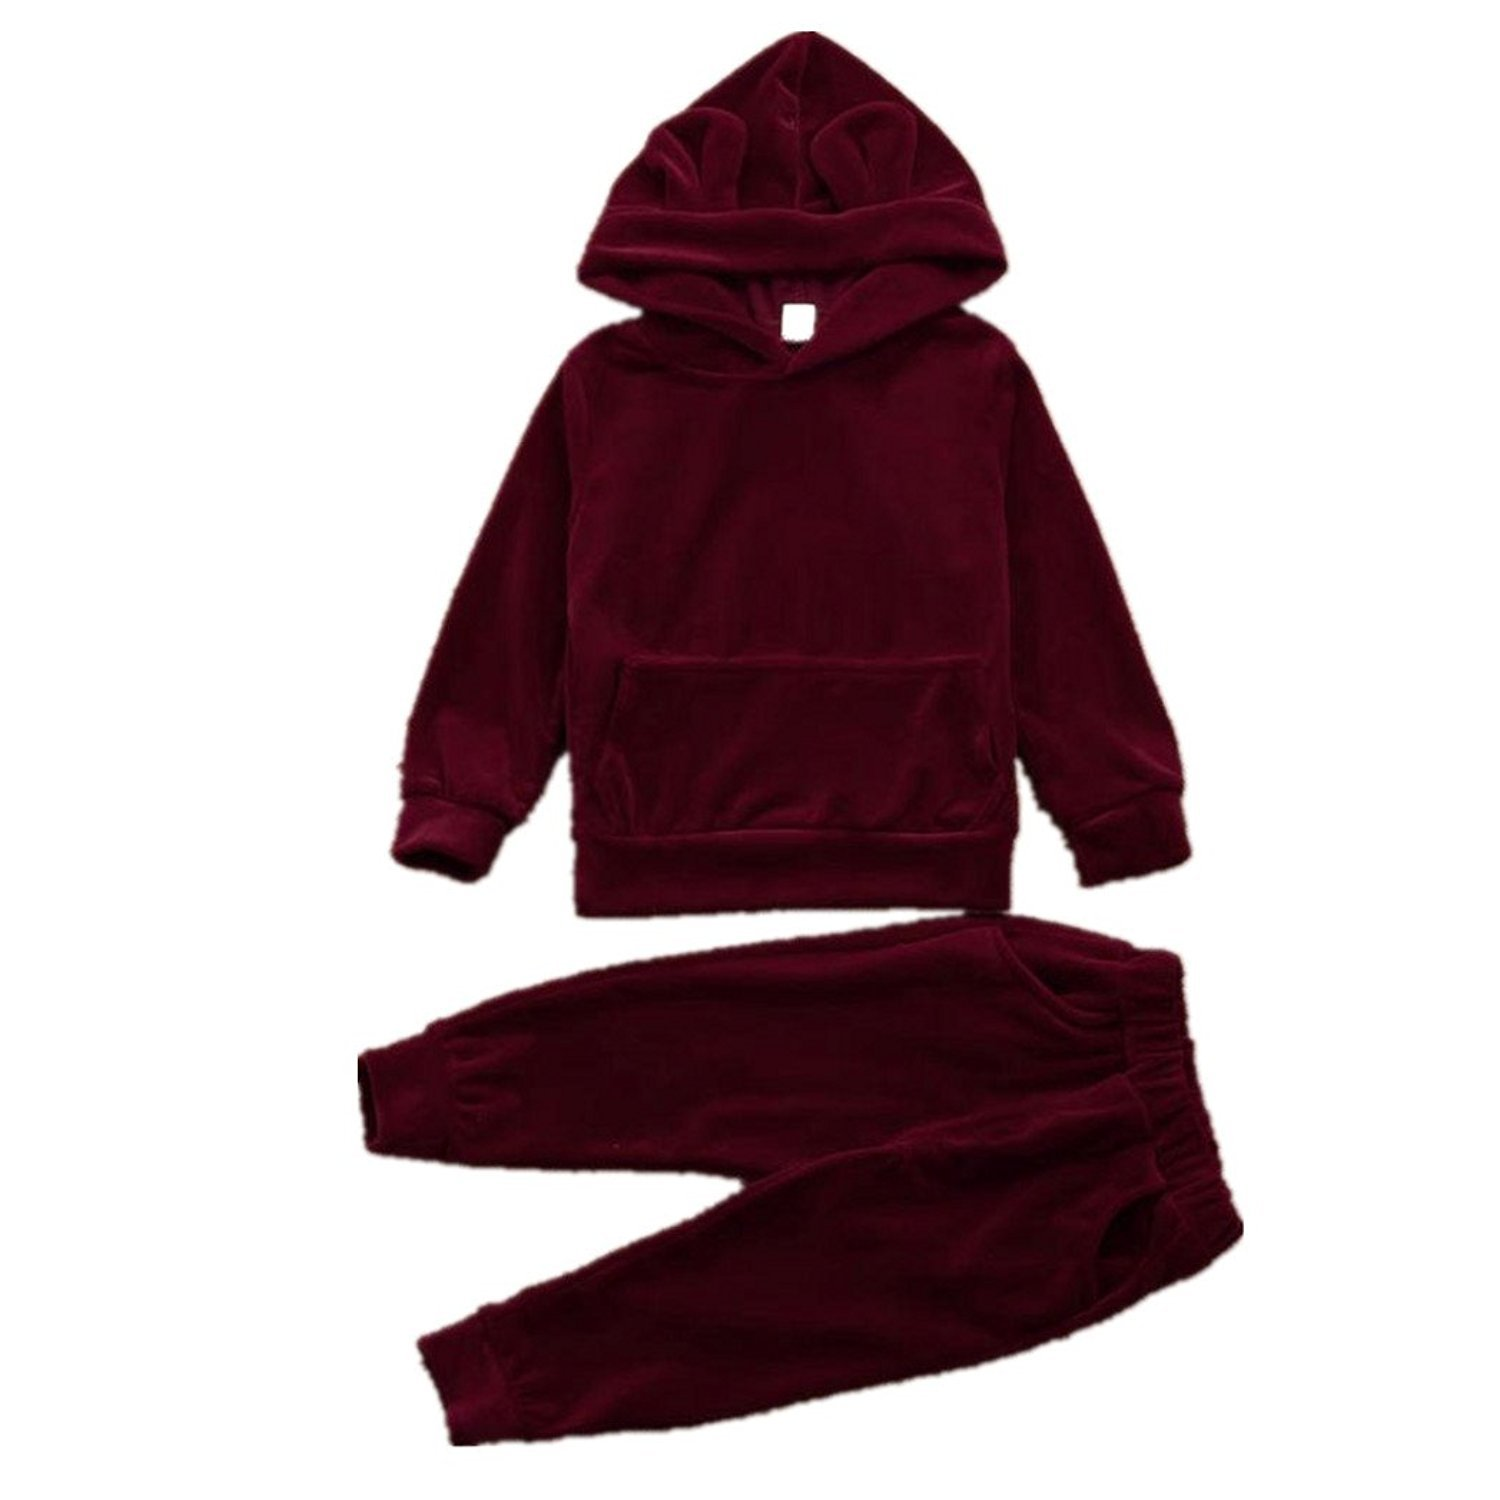 Webla Toddler Baby Boy Girl Hooded Sweatershirt Tops+Pants Velvet Solid Warm Outfits Set For 1-4 Years Old